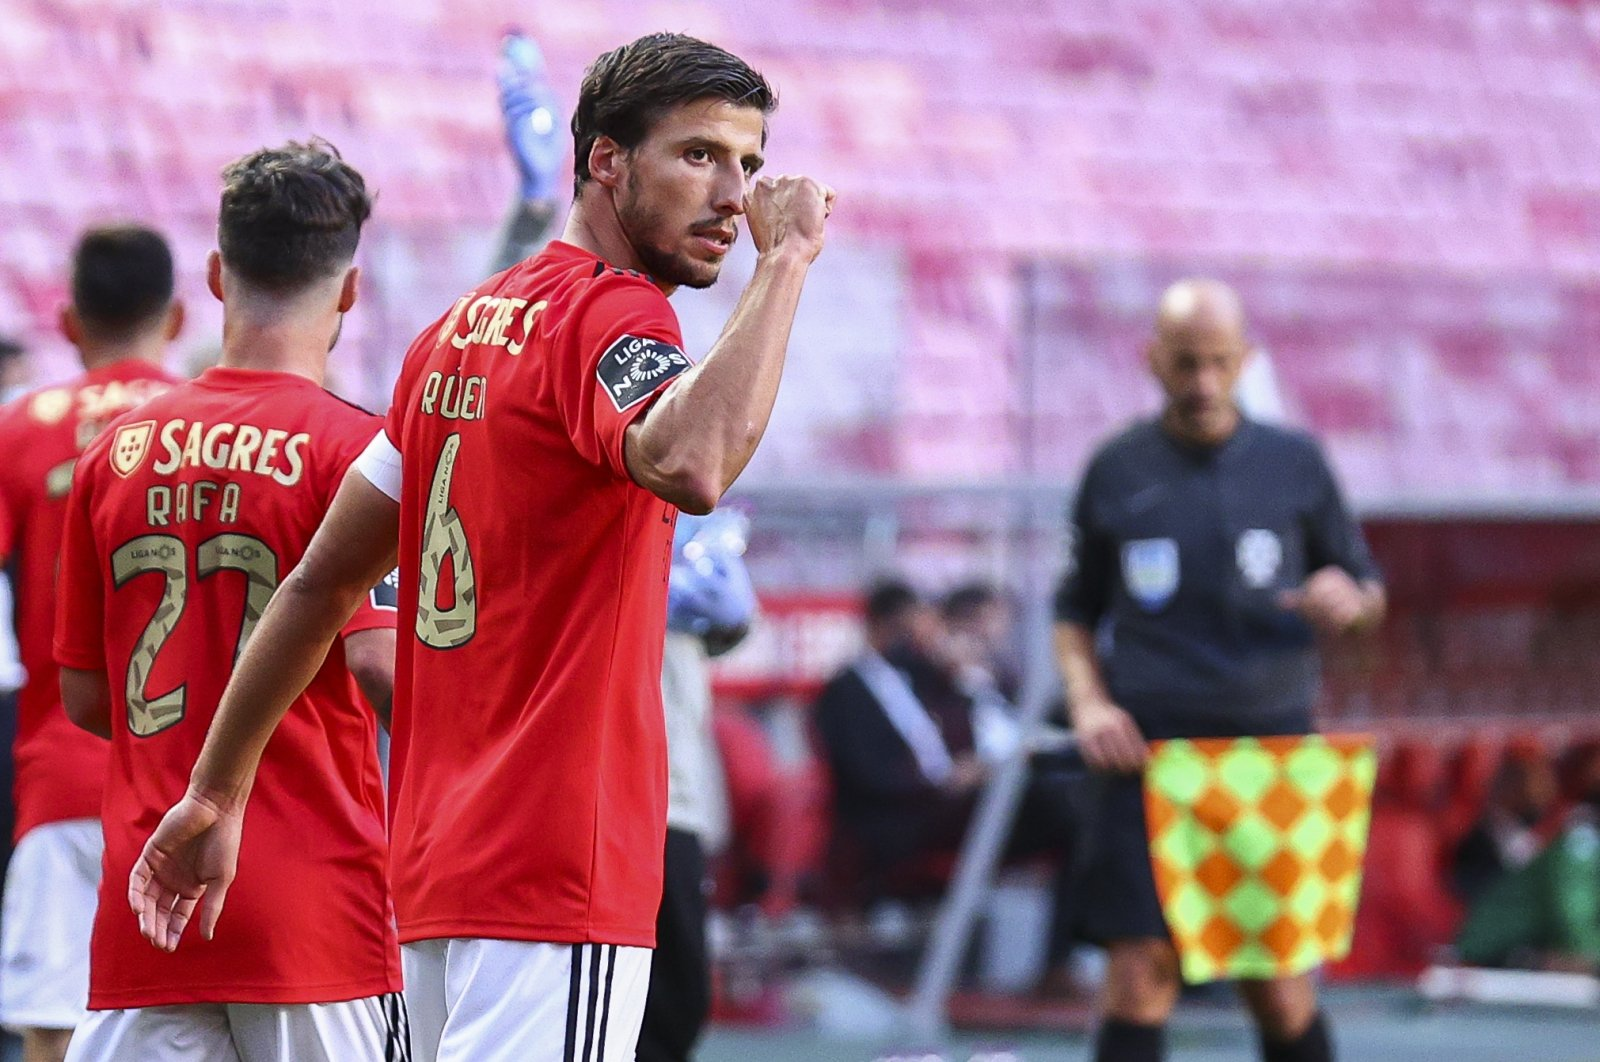 Ruben Dias reacts during a Primeira Liga match against Moreirense, in Lisbon, Portugal, Sept. 26, 2020. (Getty Images)